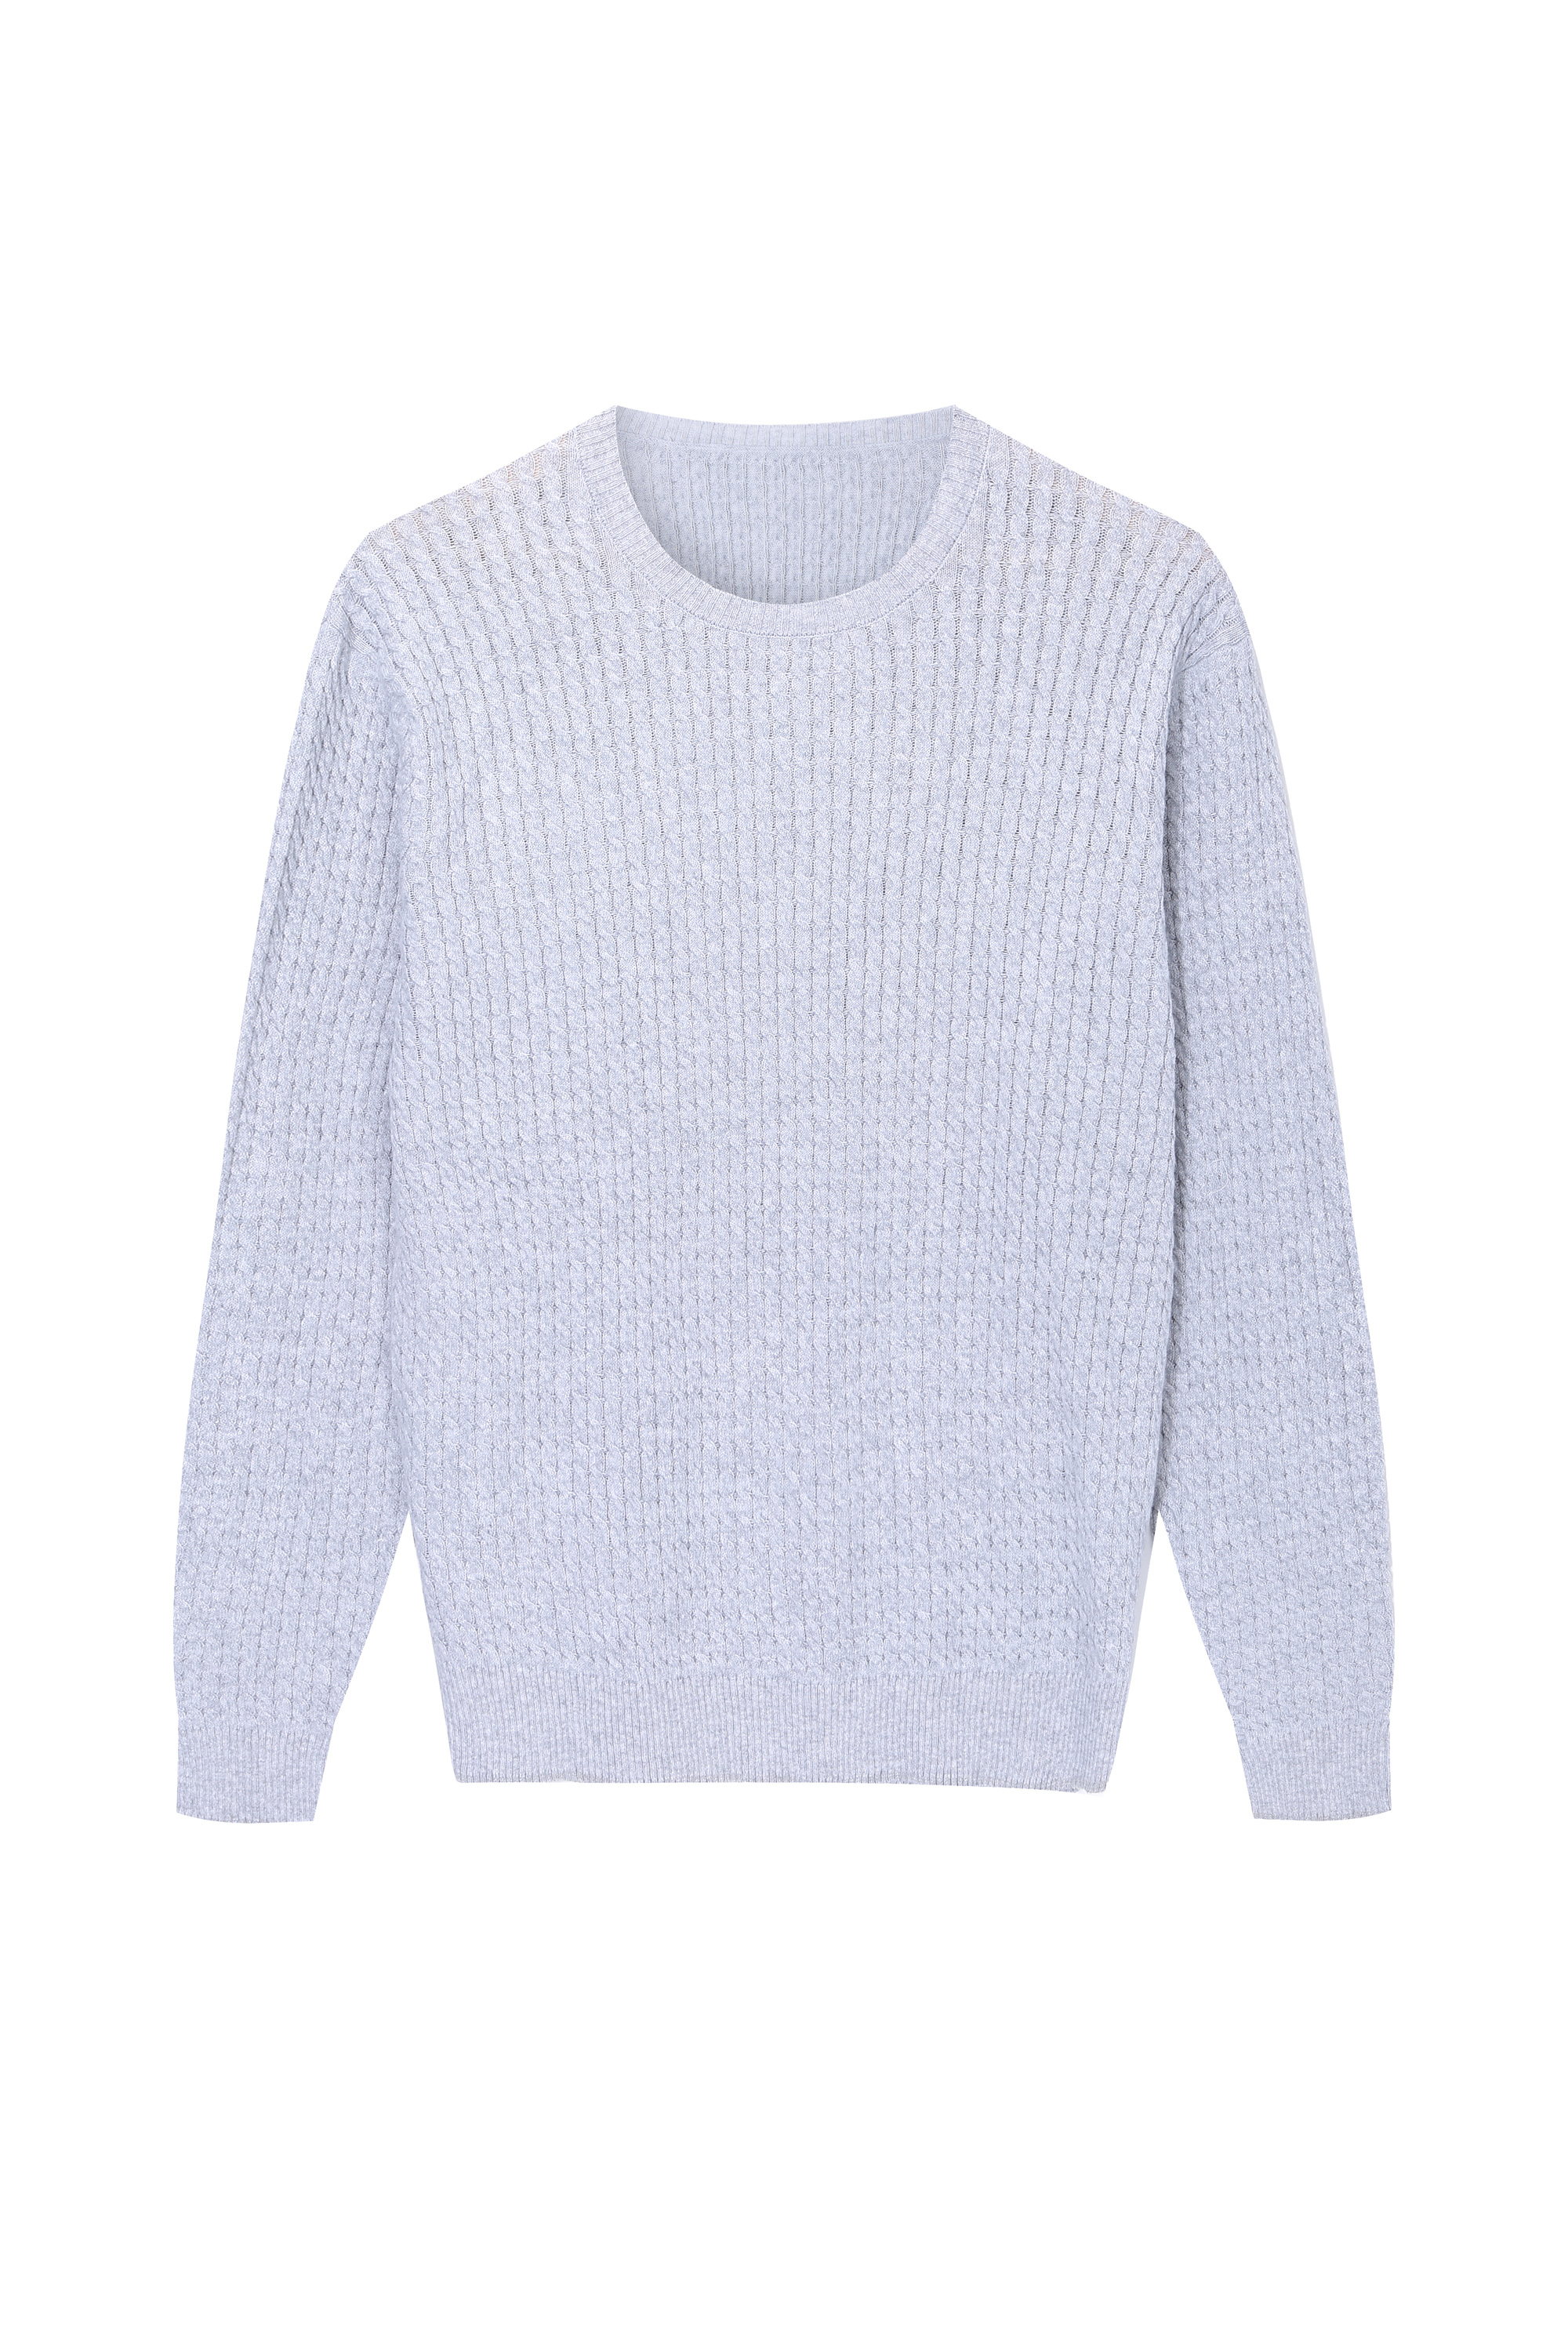 Men's Knitted Soft cotton Cable Crewneck Sweater